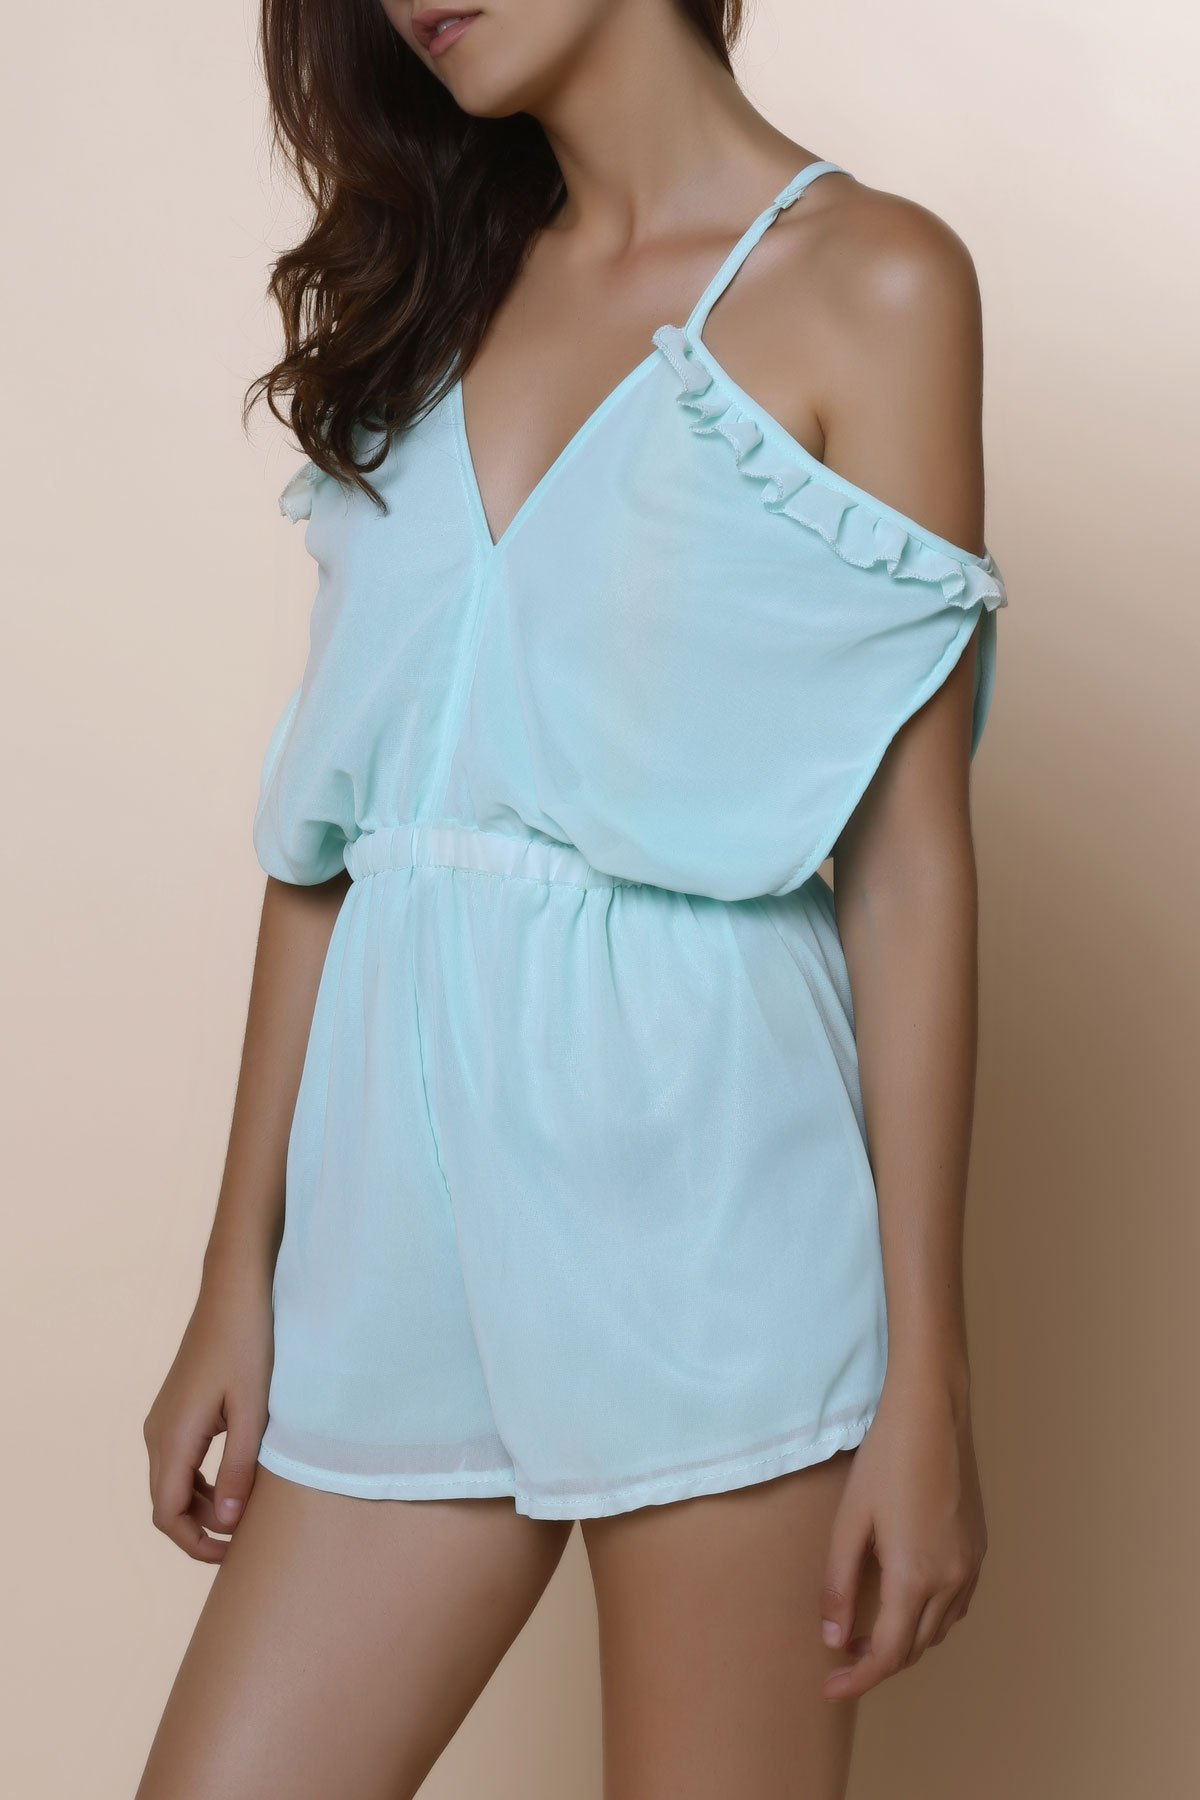 Sexy Spaghetti Strap Solid Color Hollow Out Short Sleeve Women's Chiffon Romper - MINT GREEN S